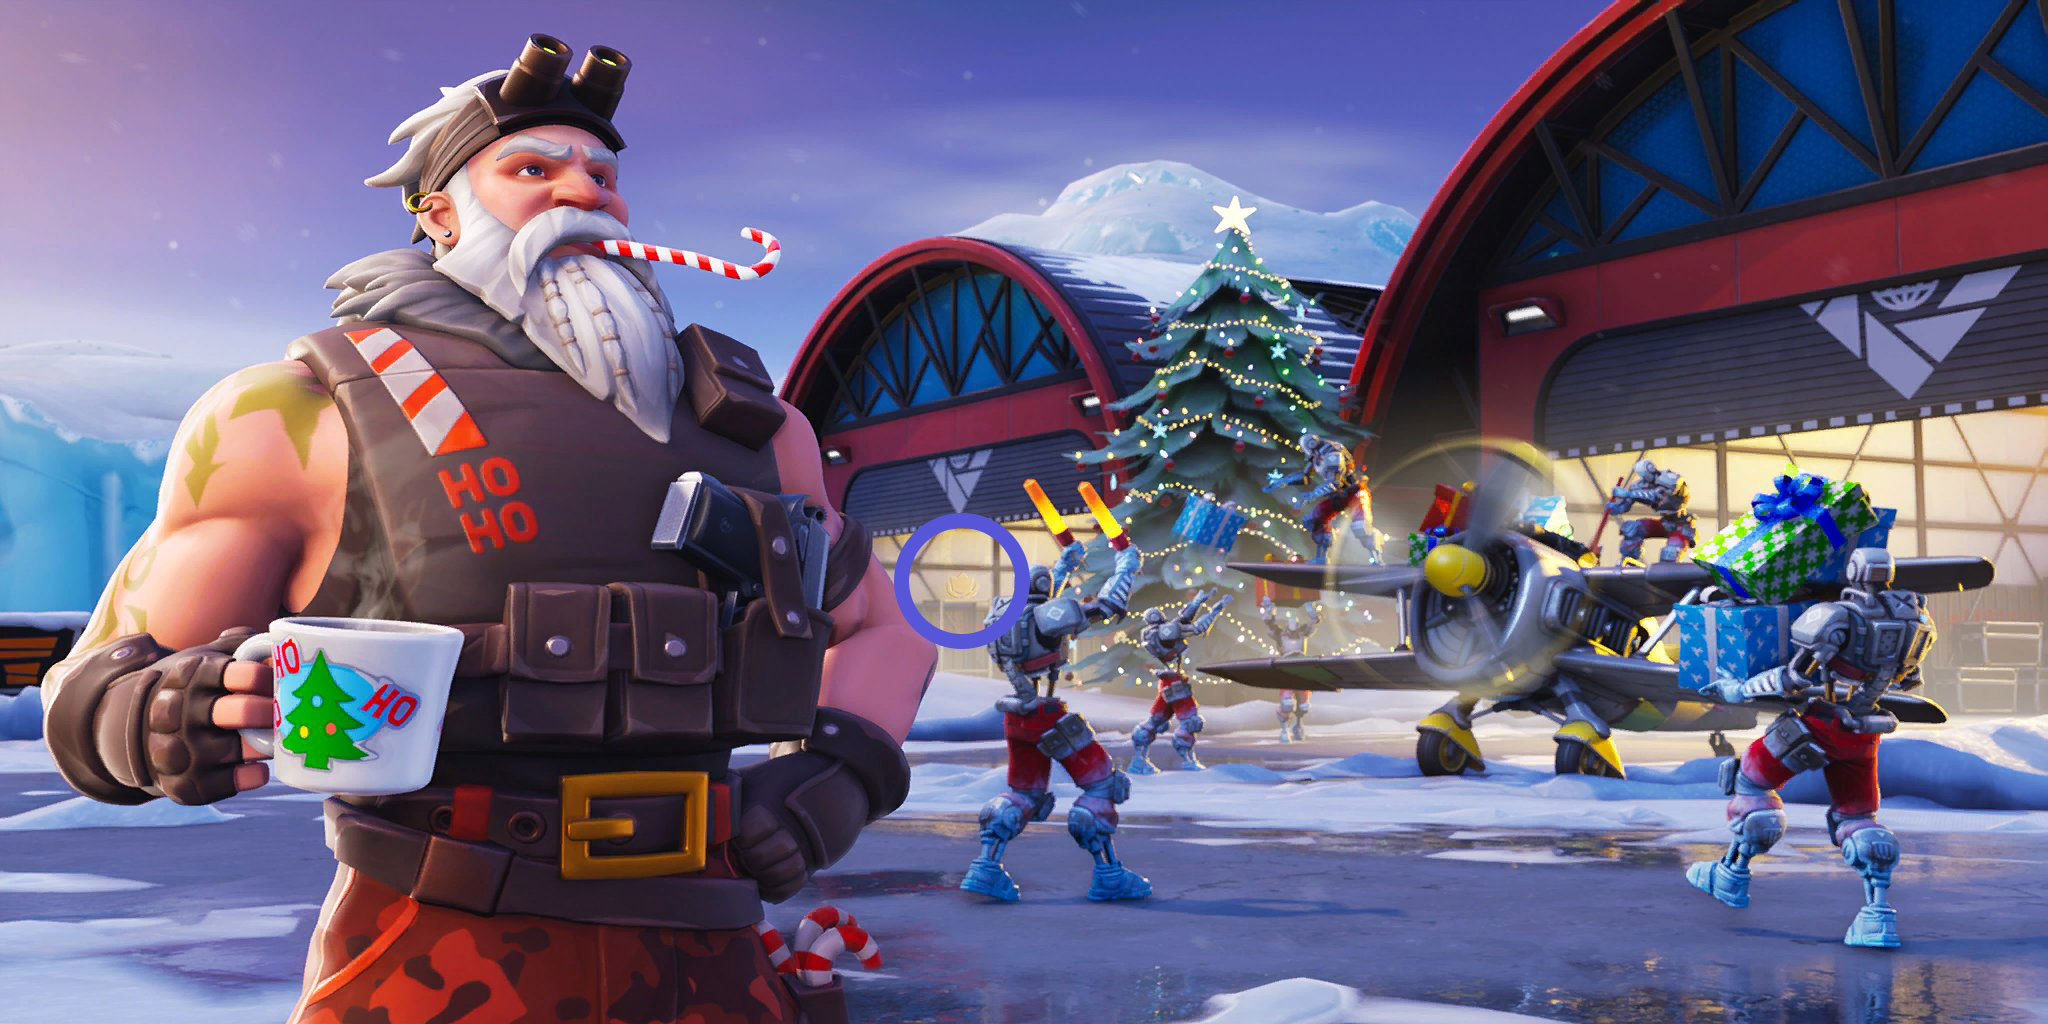 loading screen showing the a i m skins loading up an airplane with presents if you look hard into the hangar on the left you will see the transparent - fortnite week 9 loading screen season 8